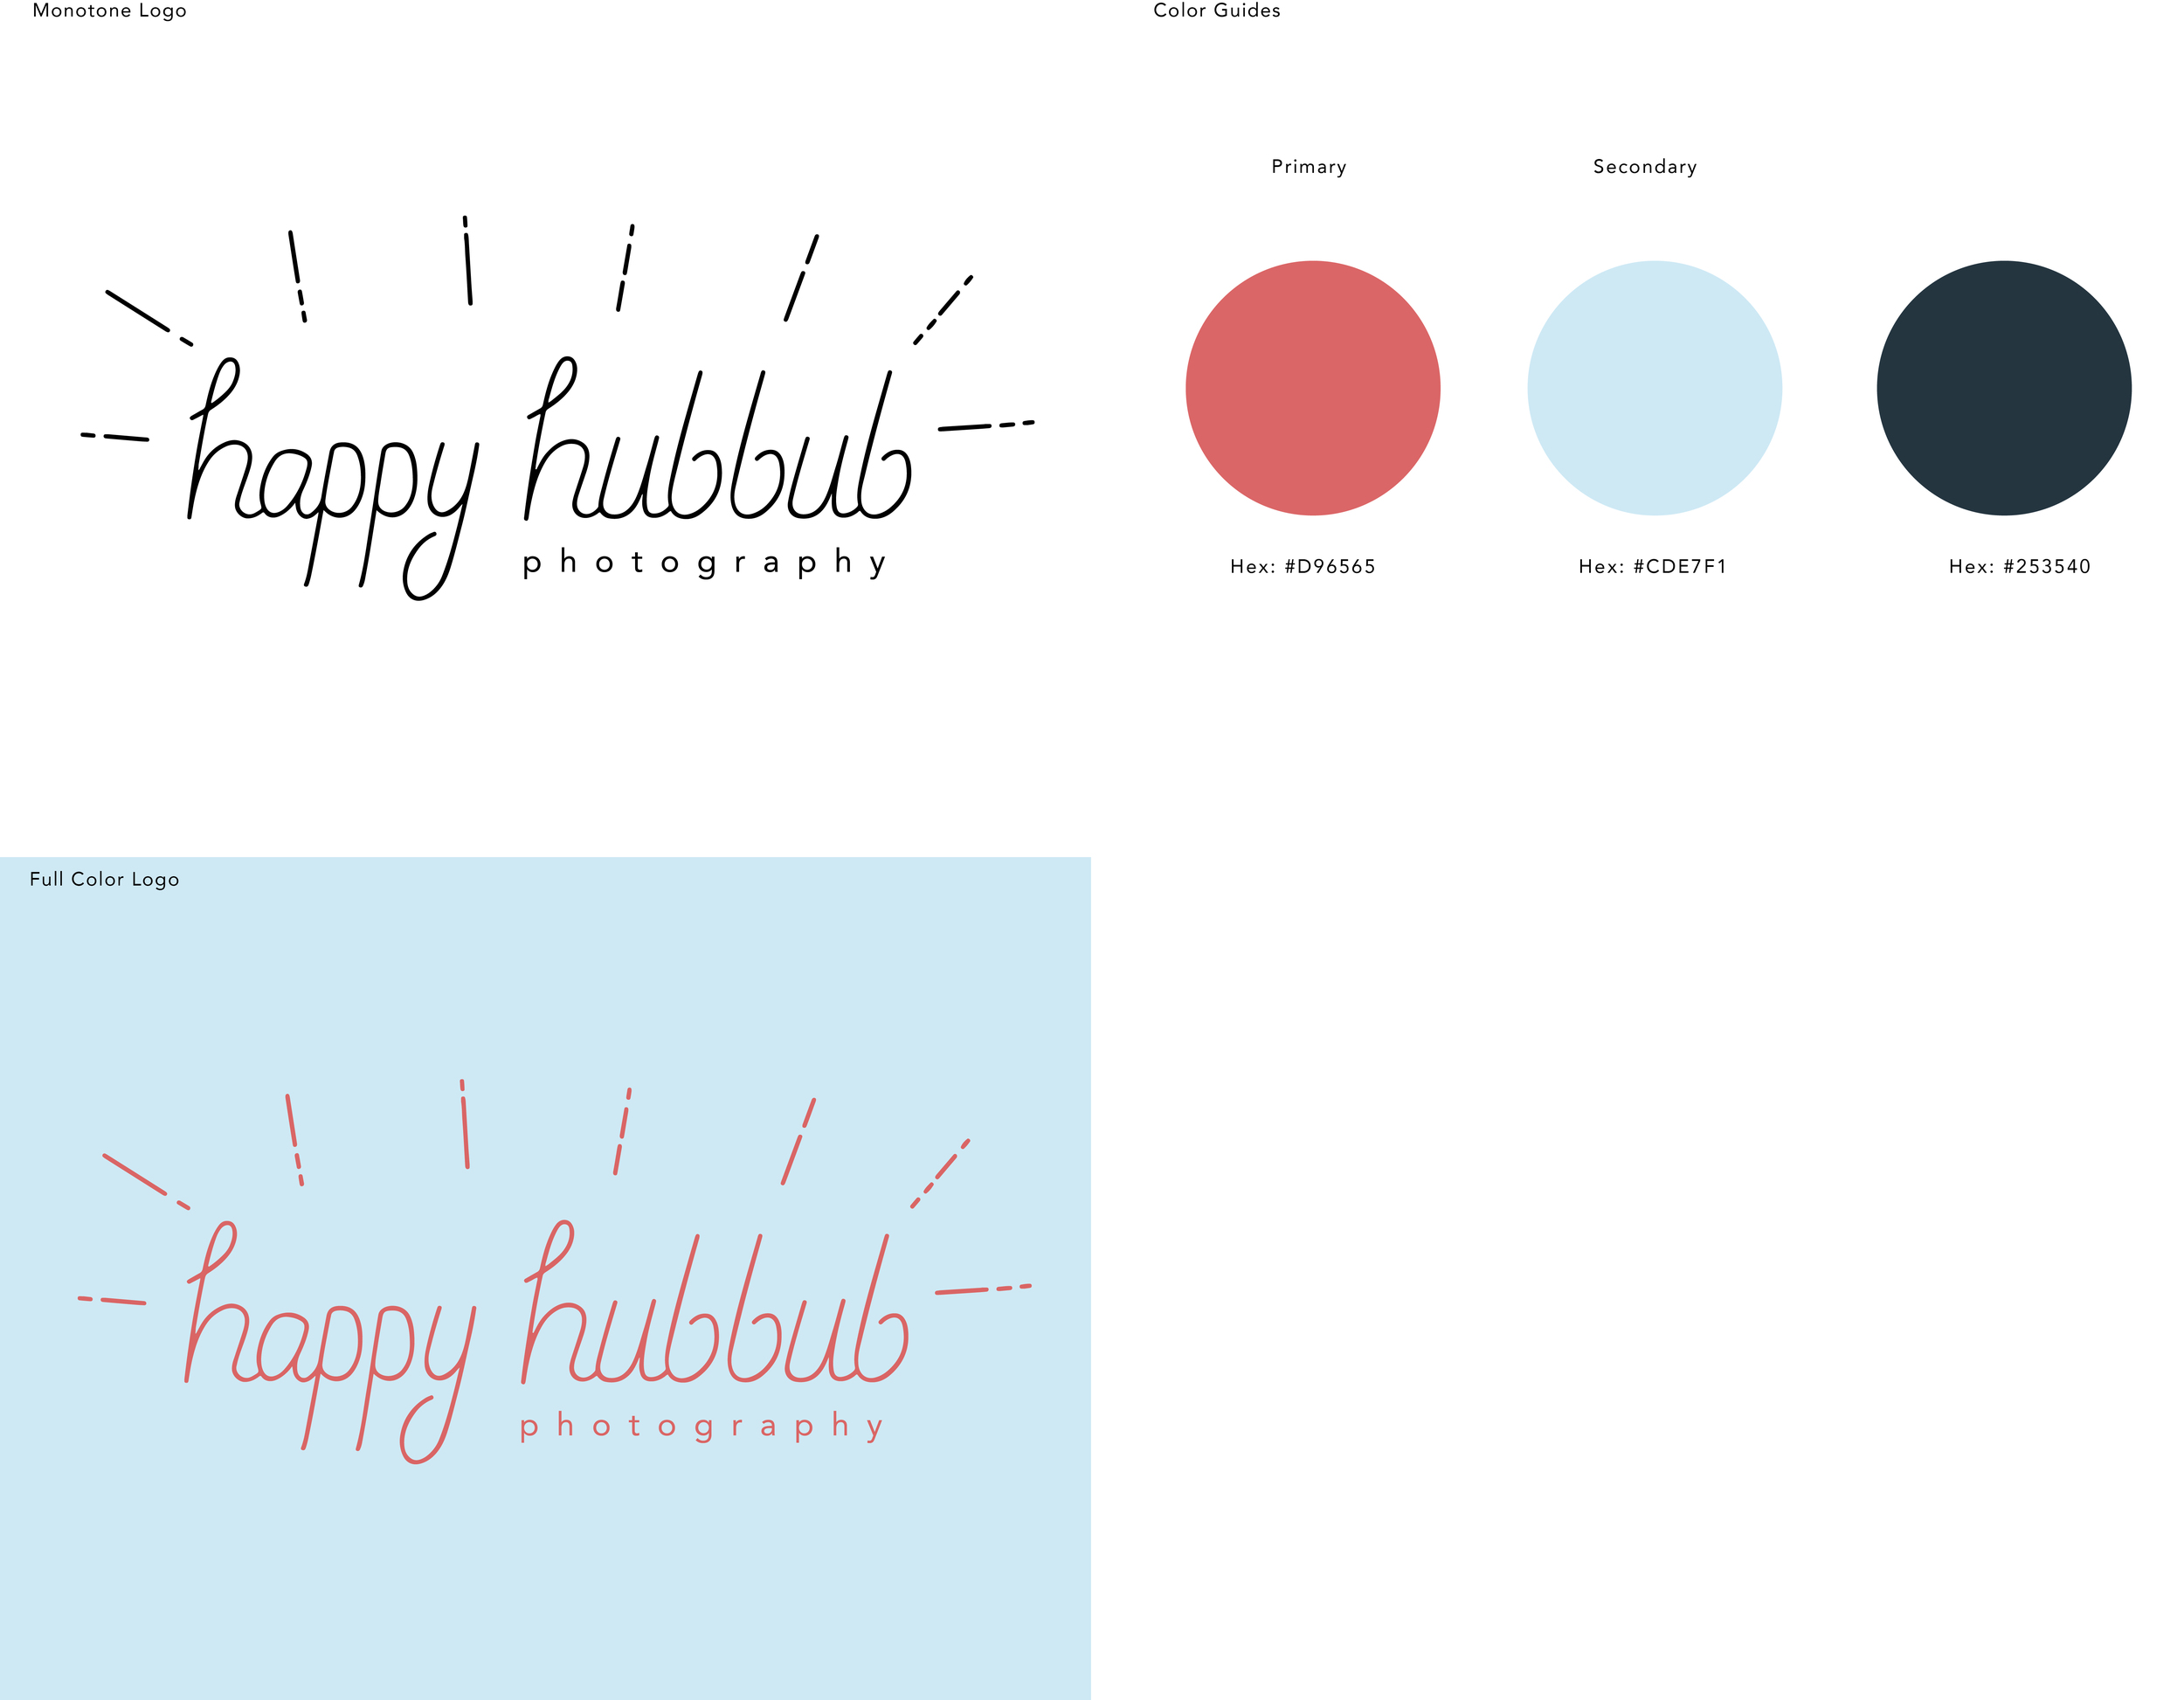 Happy Hubbub Brief Identity